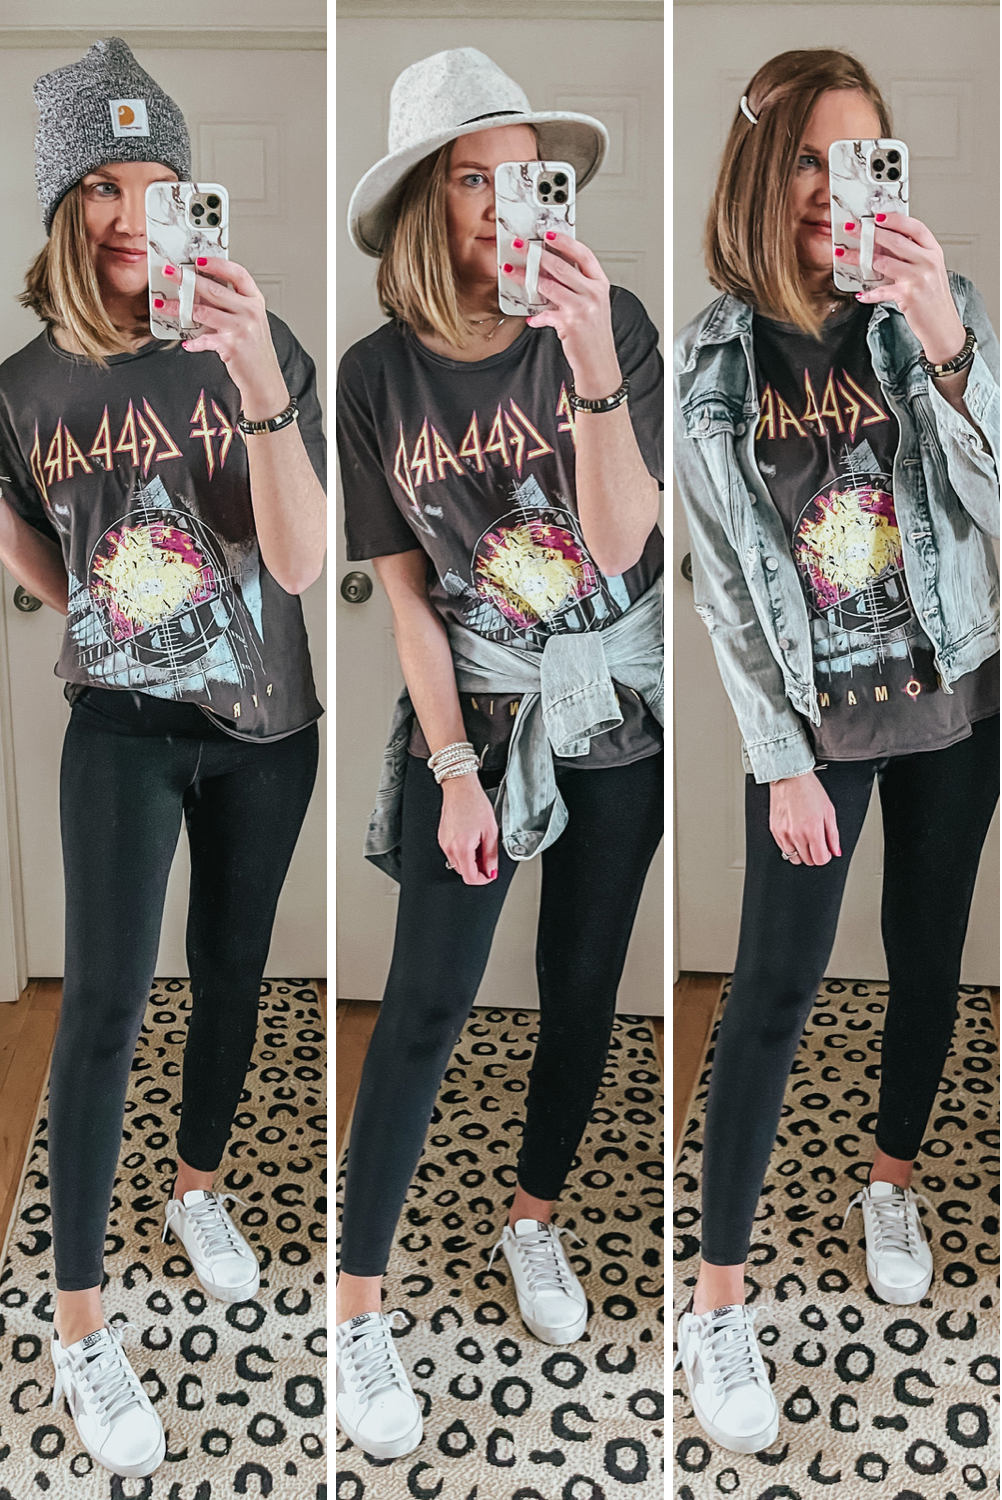 Spring Walmart Outfits that are Cute and Affordable, def leppard graphic tee